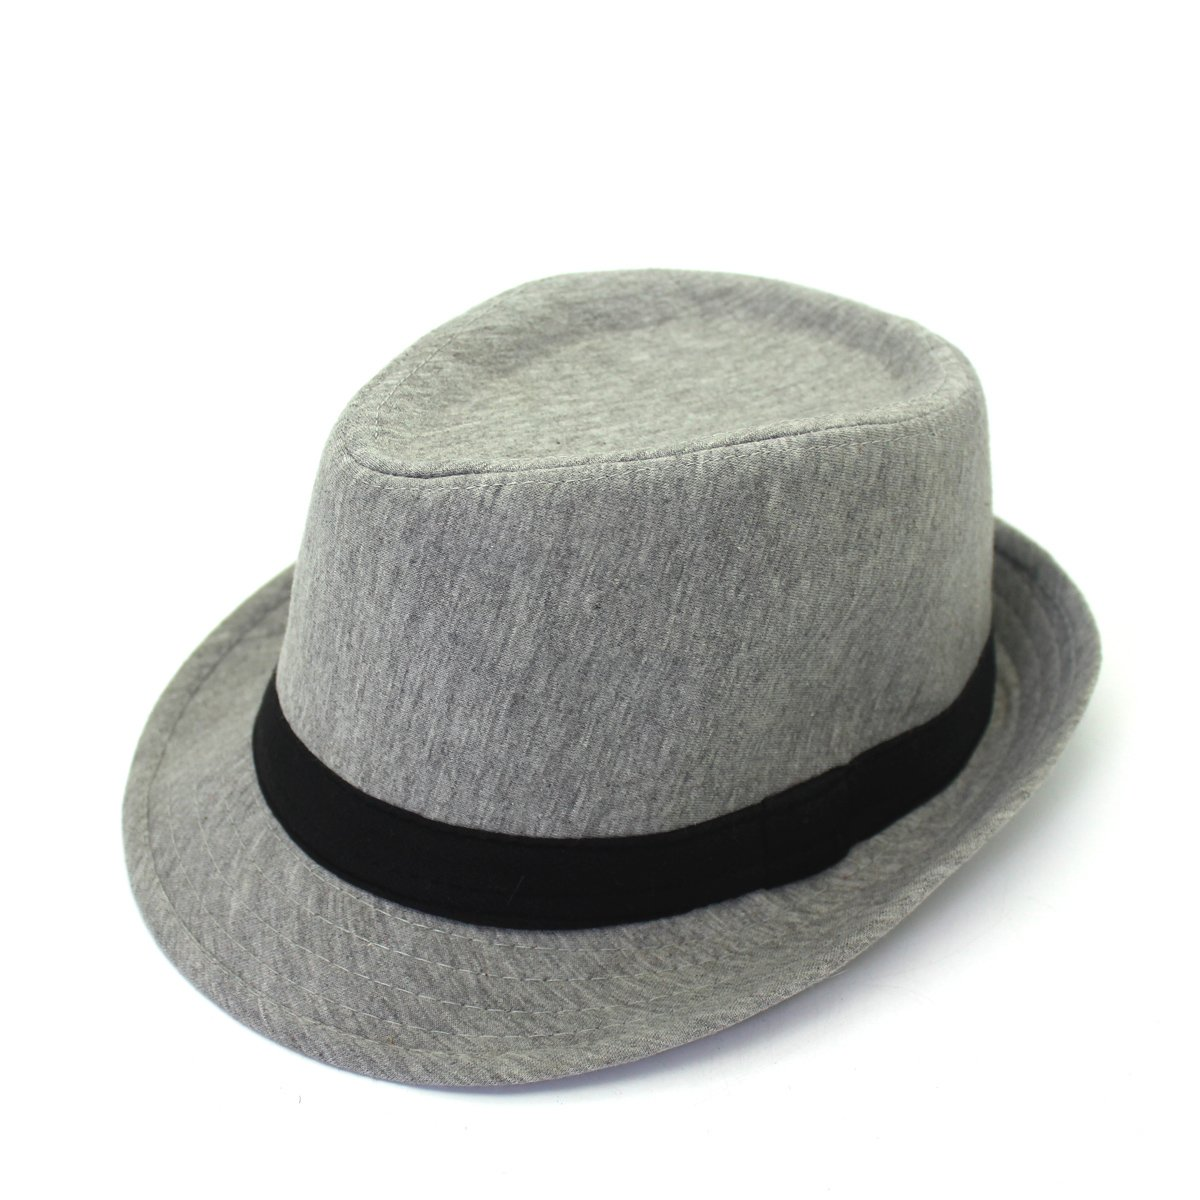 outfly Unisex Fedora Trilby Hat Top Hat Grey 100% Cotton, M 22.1-22.8in B11094-G